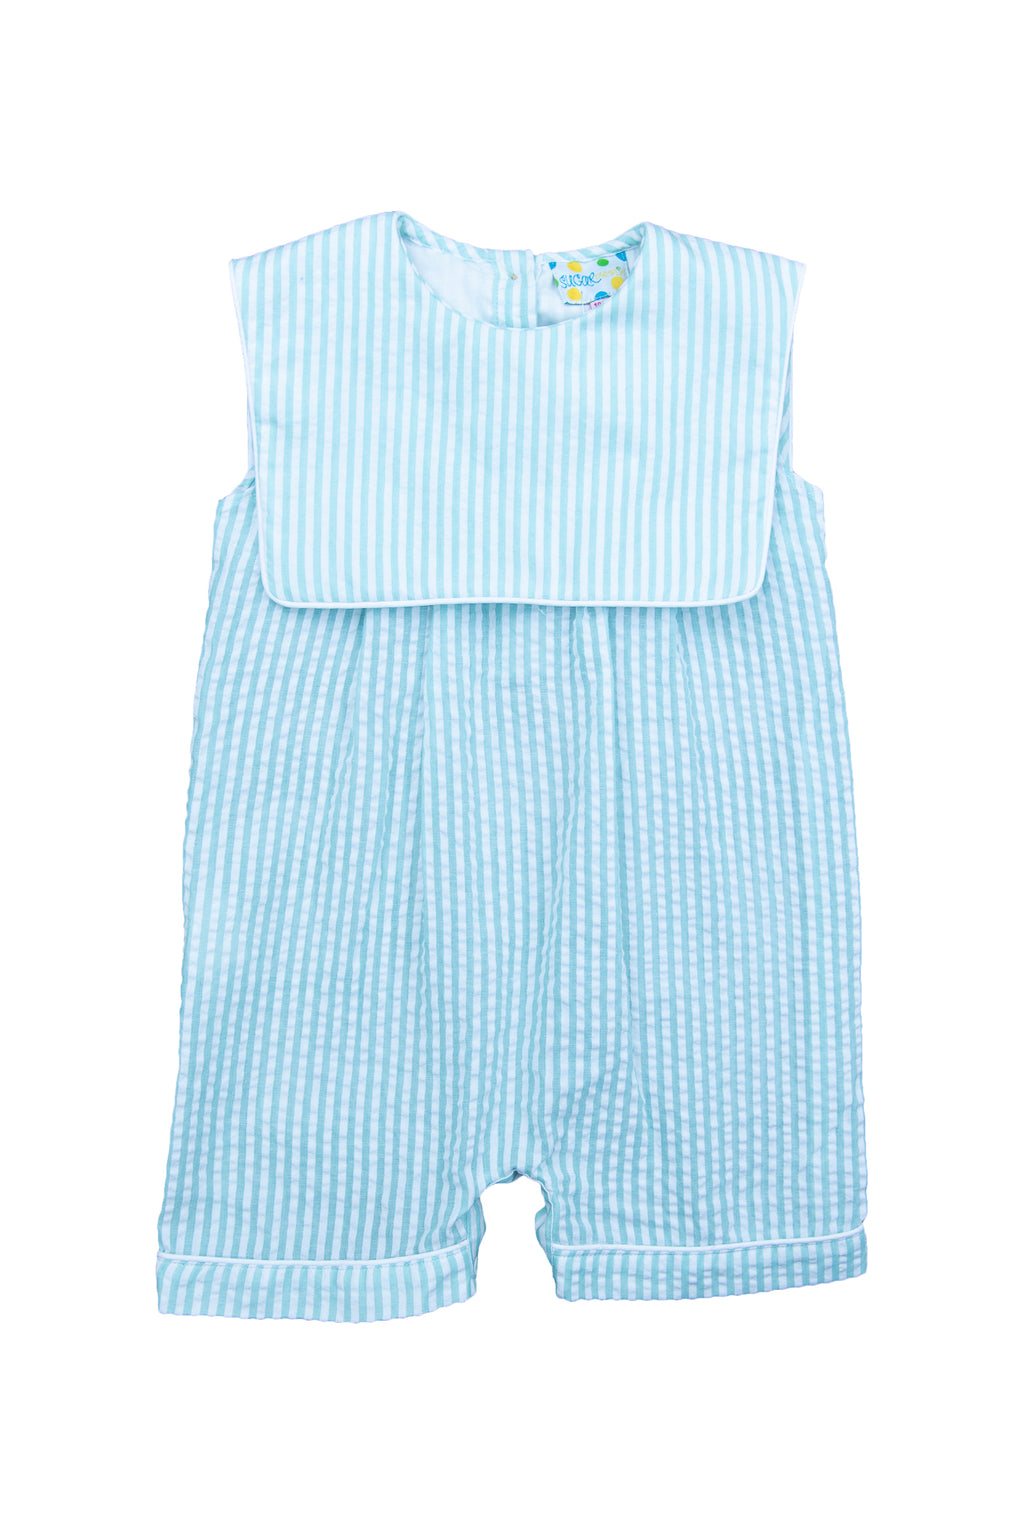 Boys Mint Seersucker Romper